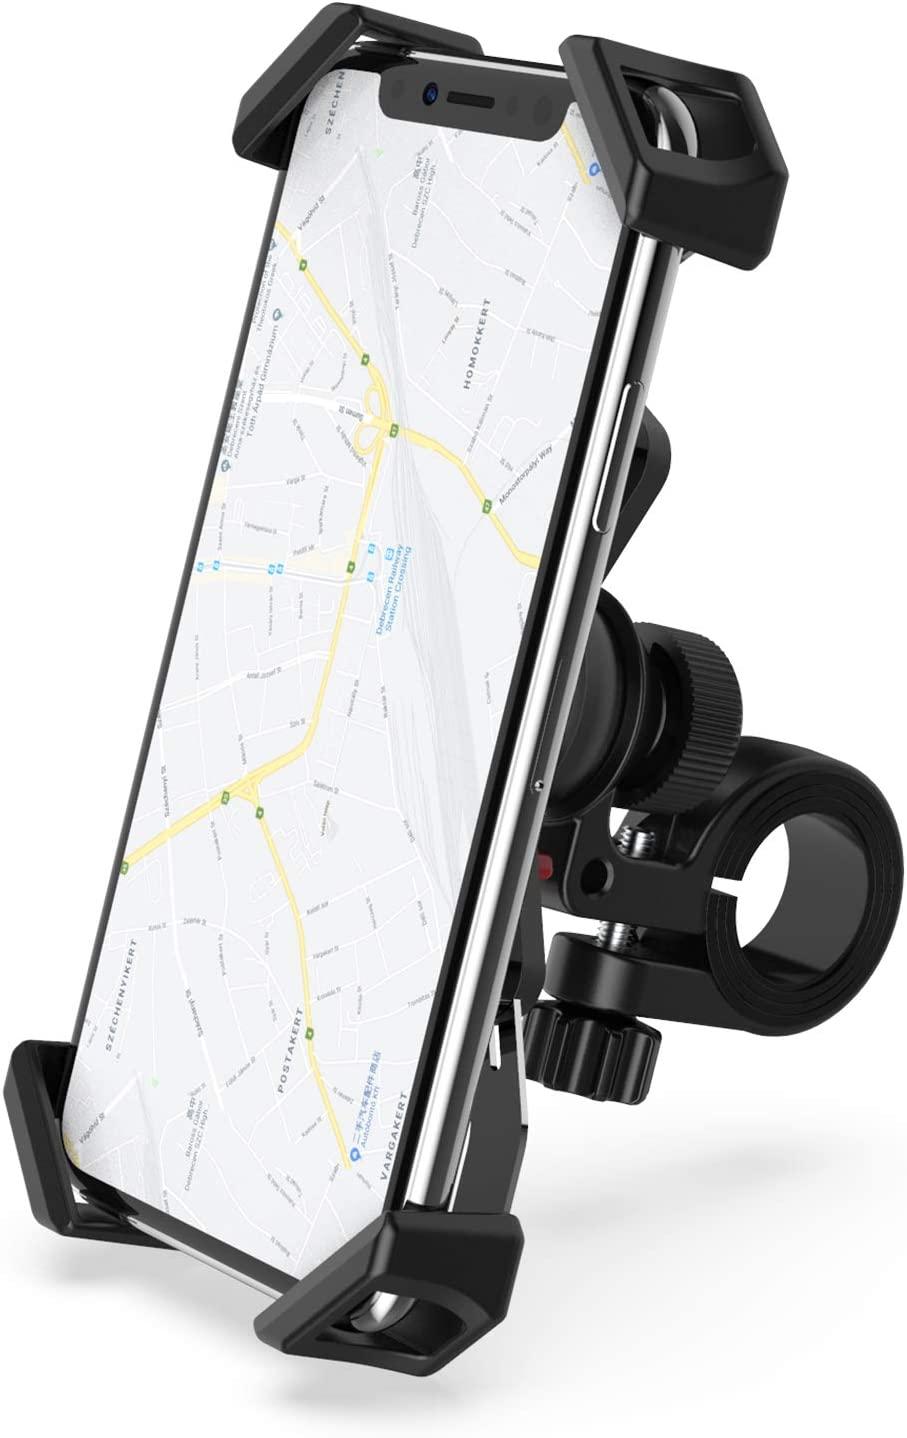 RYYMX Bicycle Phone Holder : 360/° Rotation Adjustable Motorcycle Phone Mount for iPhone Xs Max XR X 8 7 6 Plus Note 10 9 8 Bike Phone Mount Samsung S10+ S9 S8 4-7 inches Android Cell Phones GPS